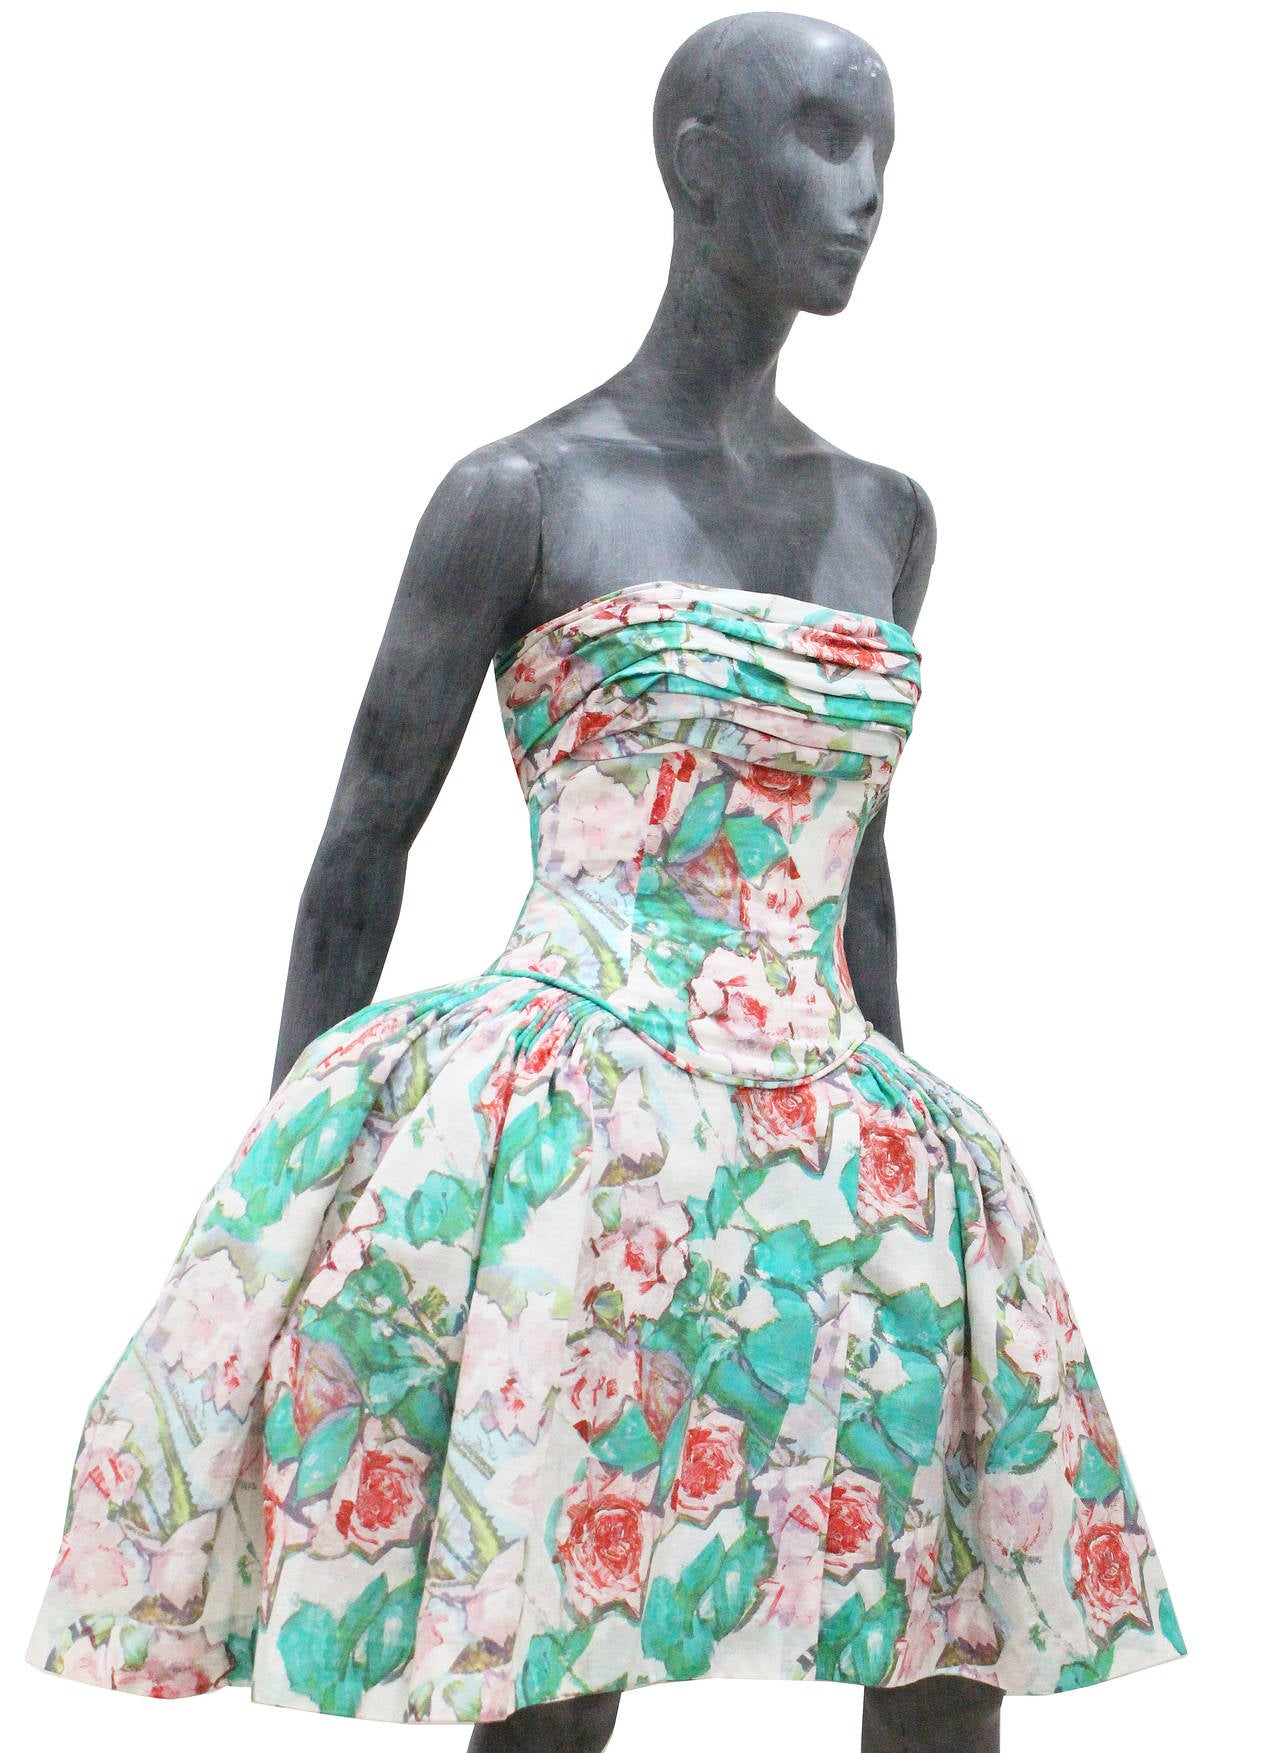 Designed by Karl Lagerfeld this beautiful cocktail dress in the spirit of Marie Antoinette is definitely a show piece. The dress features an abstract painted floral print, a corseted bodice and a super wide pannier skirt (these skirts were